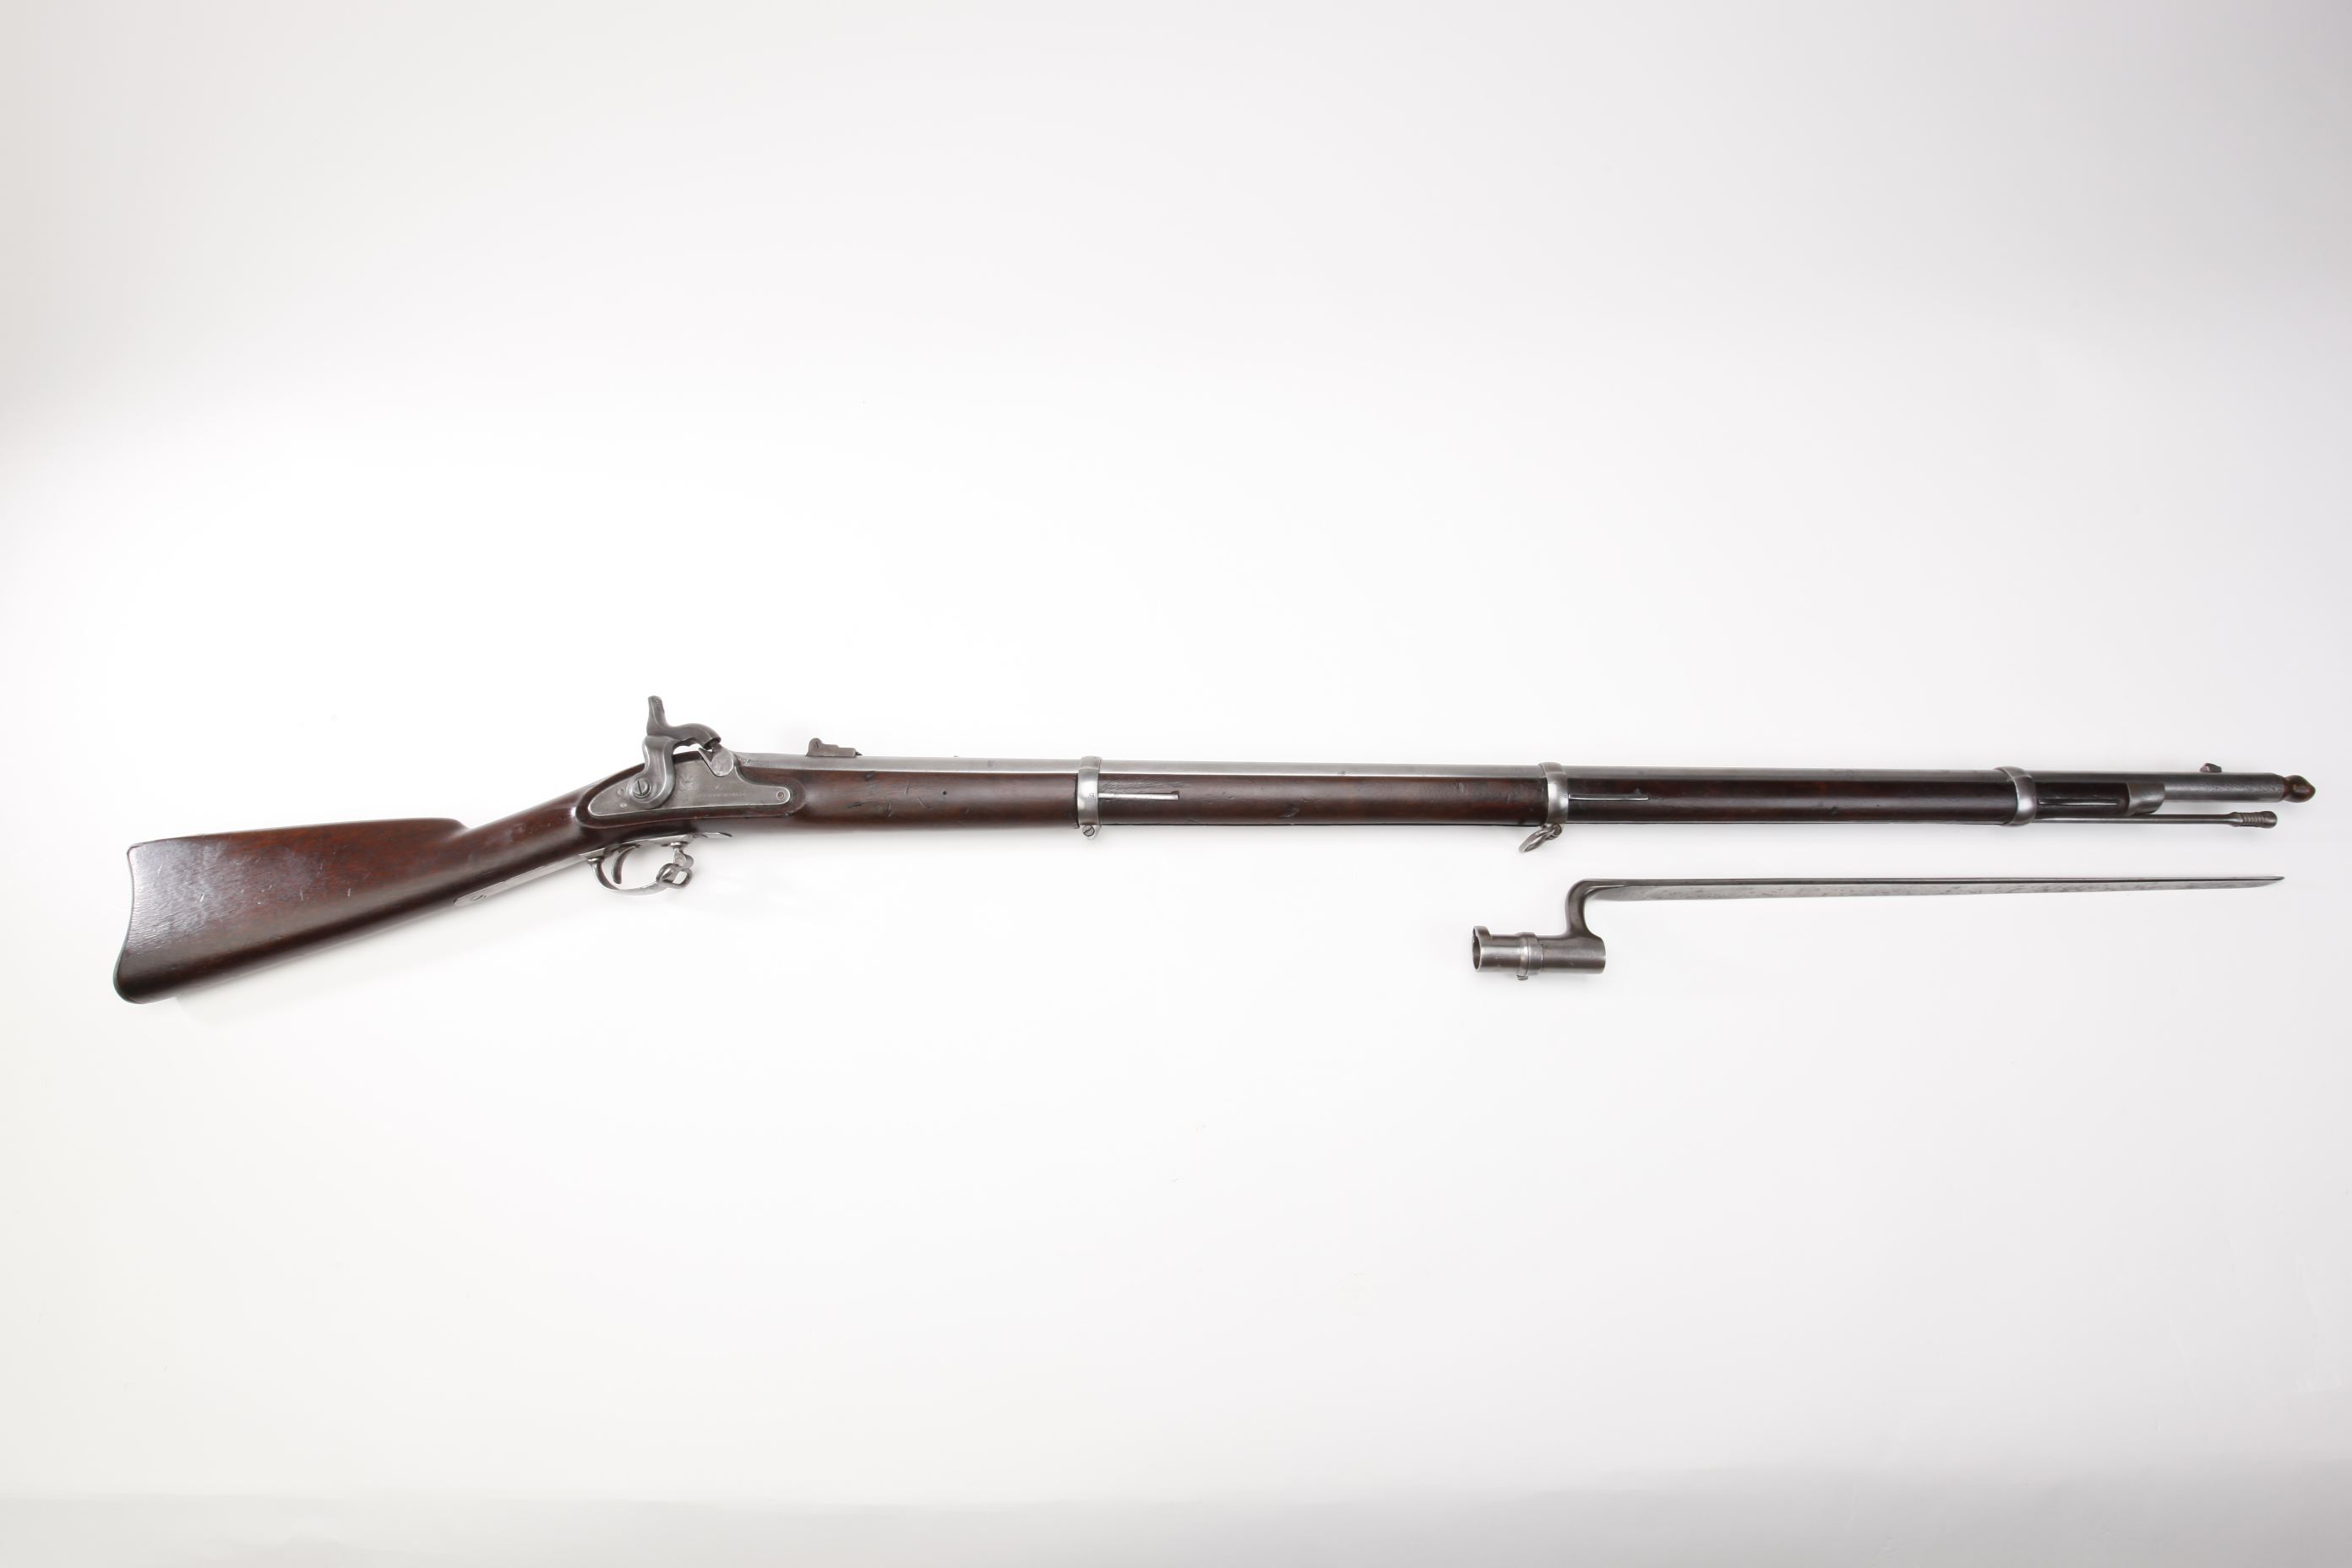 U.S. Springfield Model 1863 Type II Rifle Musket